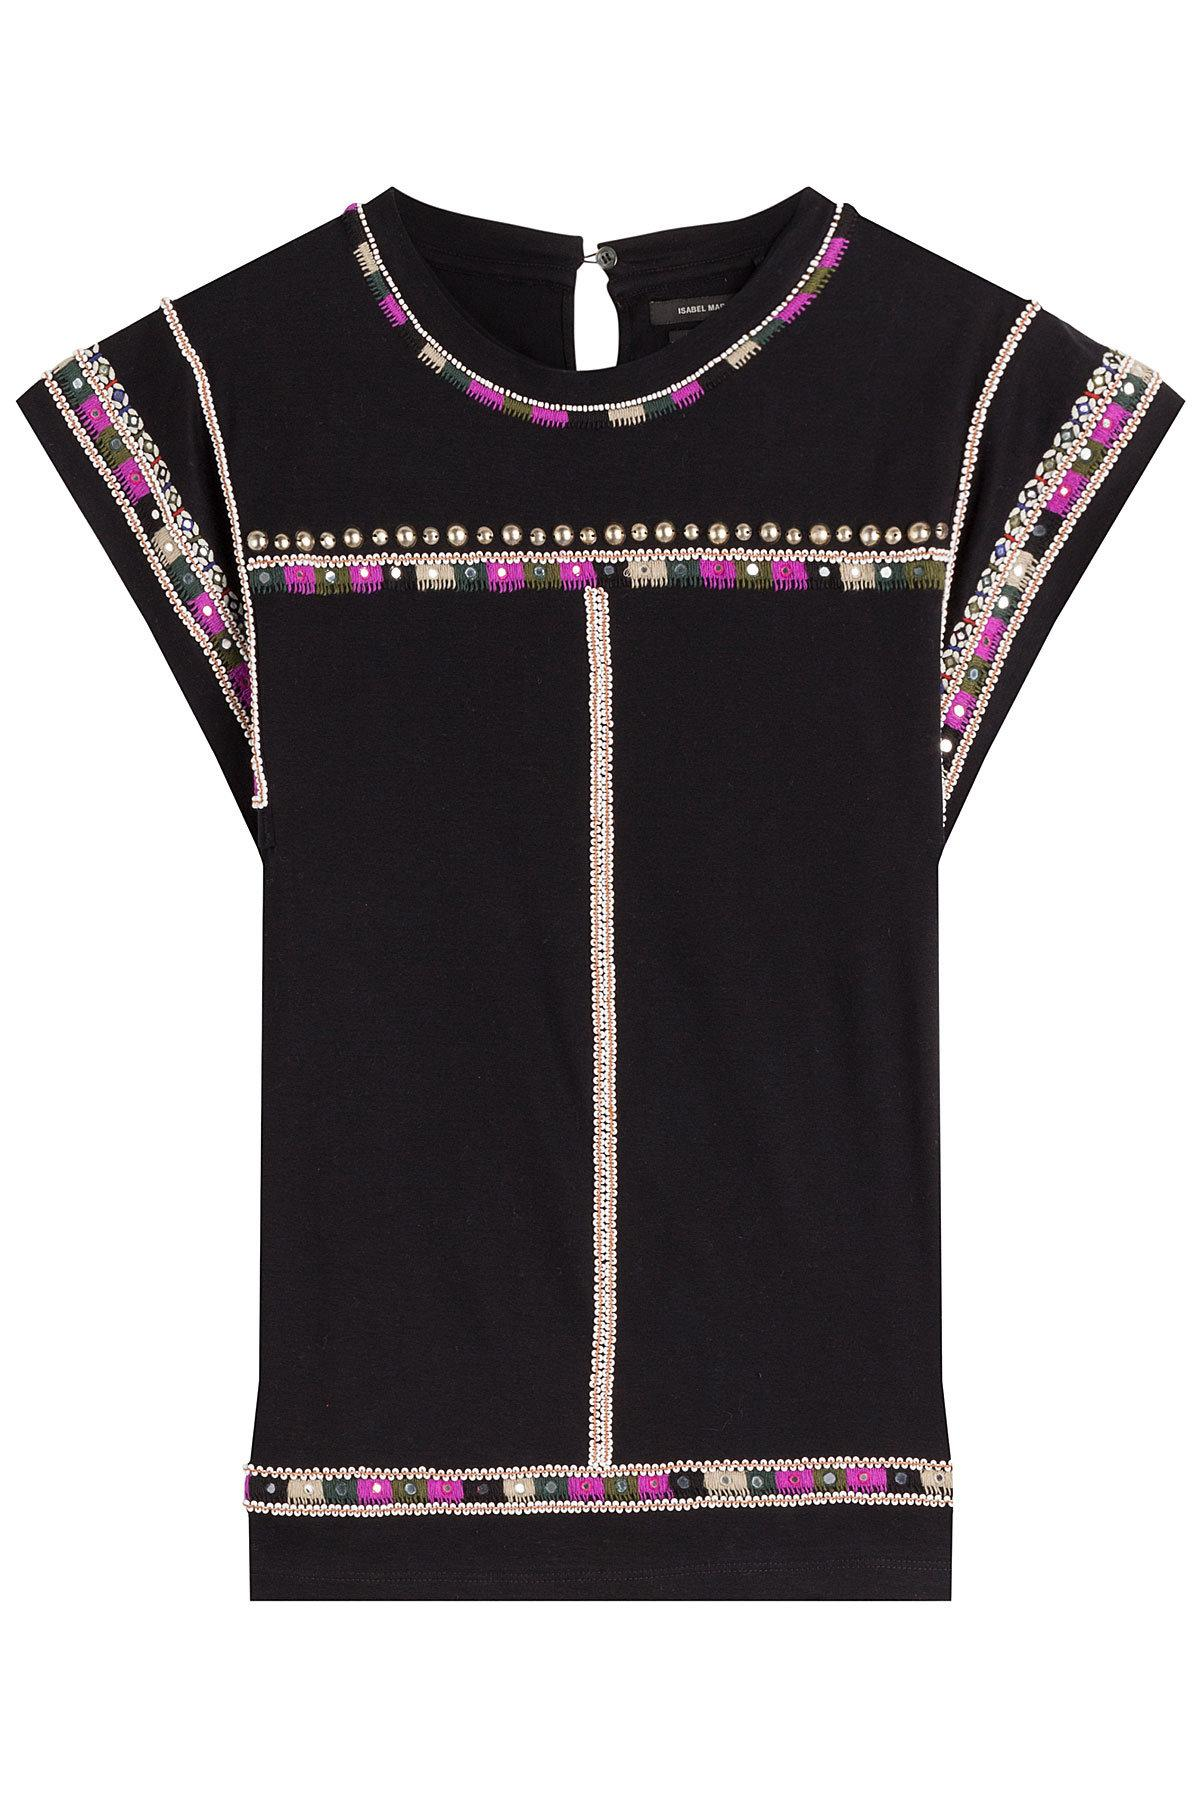 Isabel Marant Embellished And Embroidered Cotton Top In Black